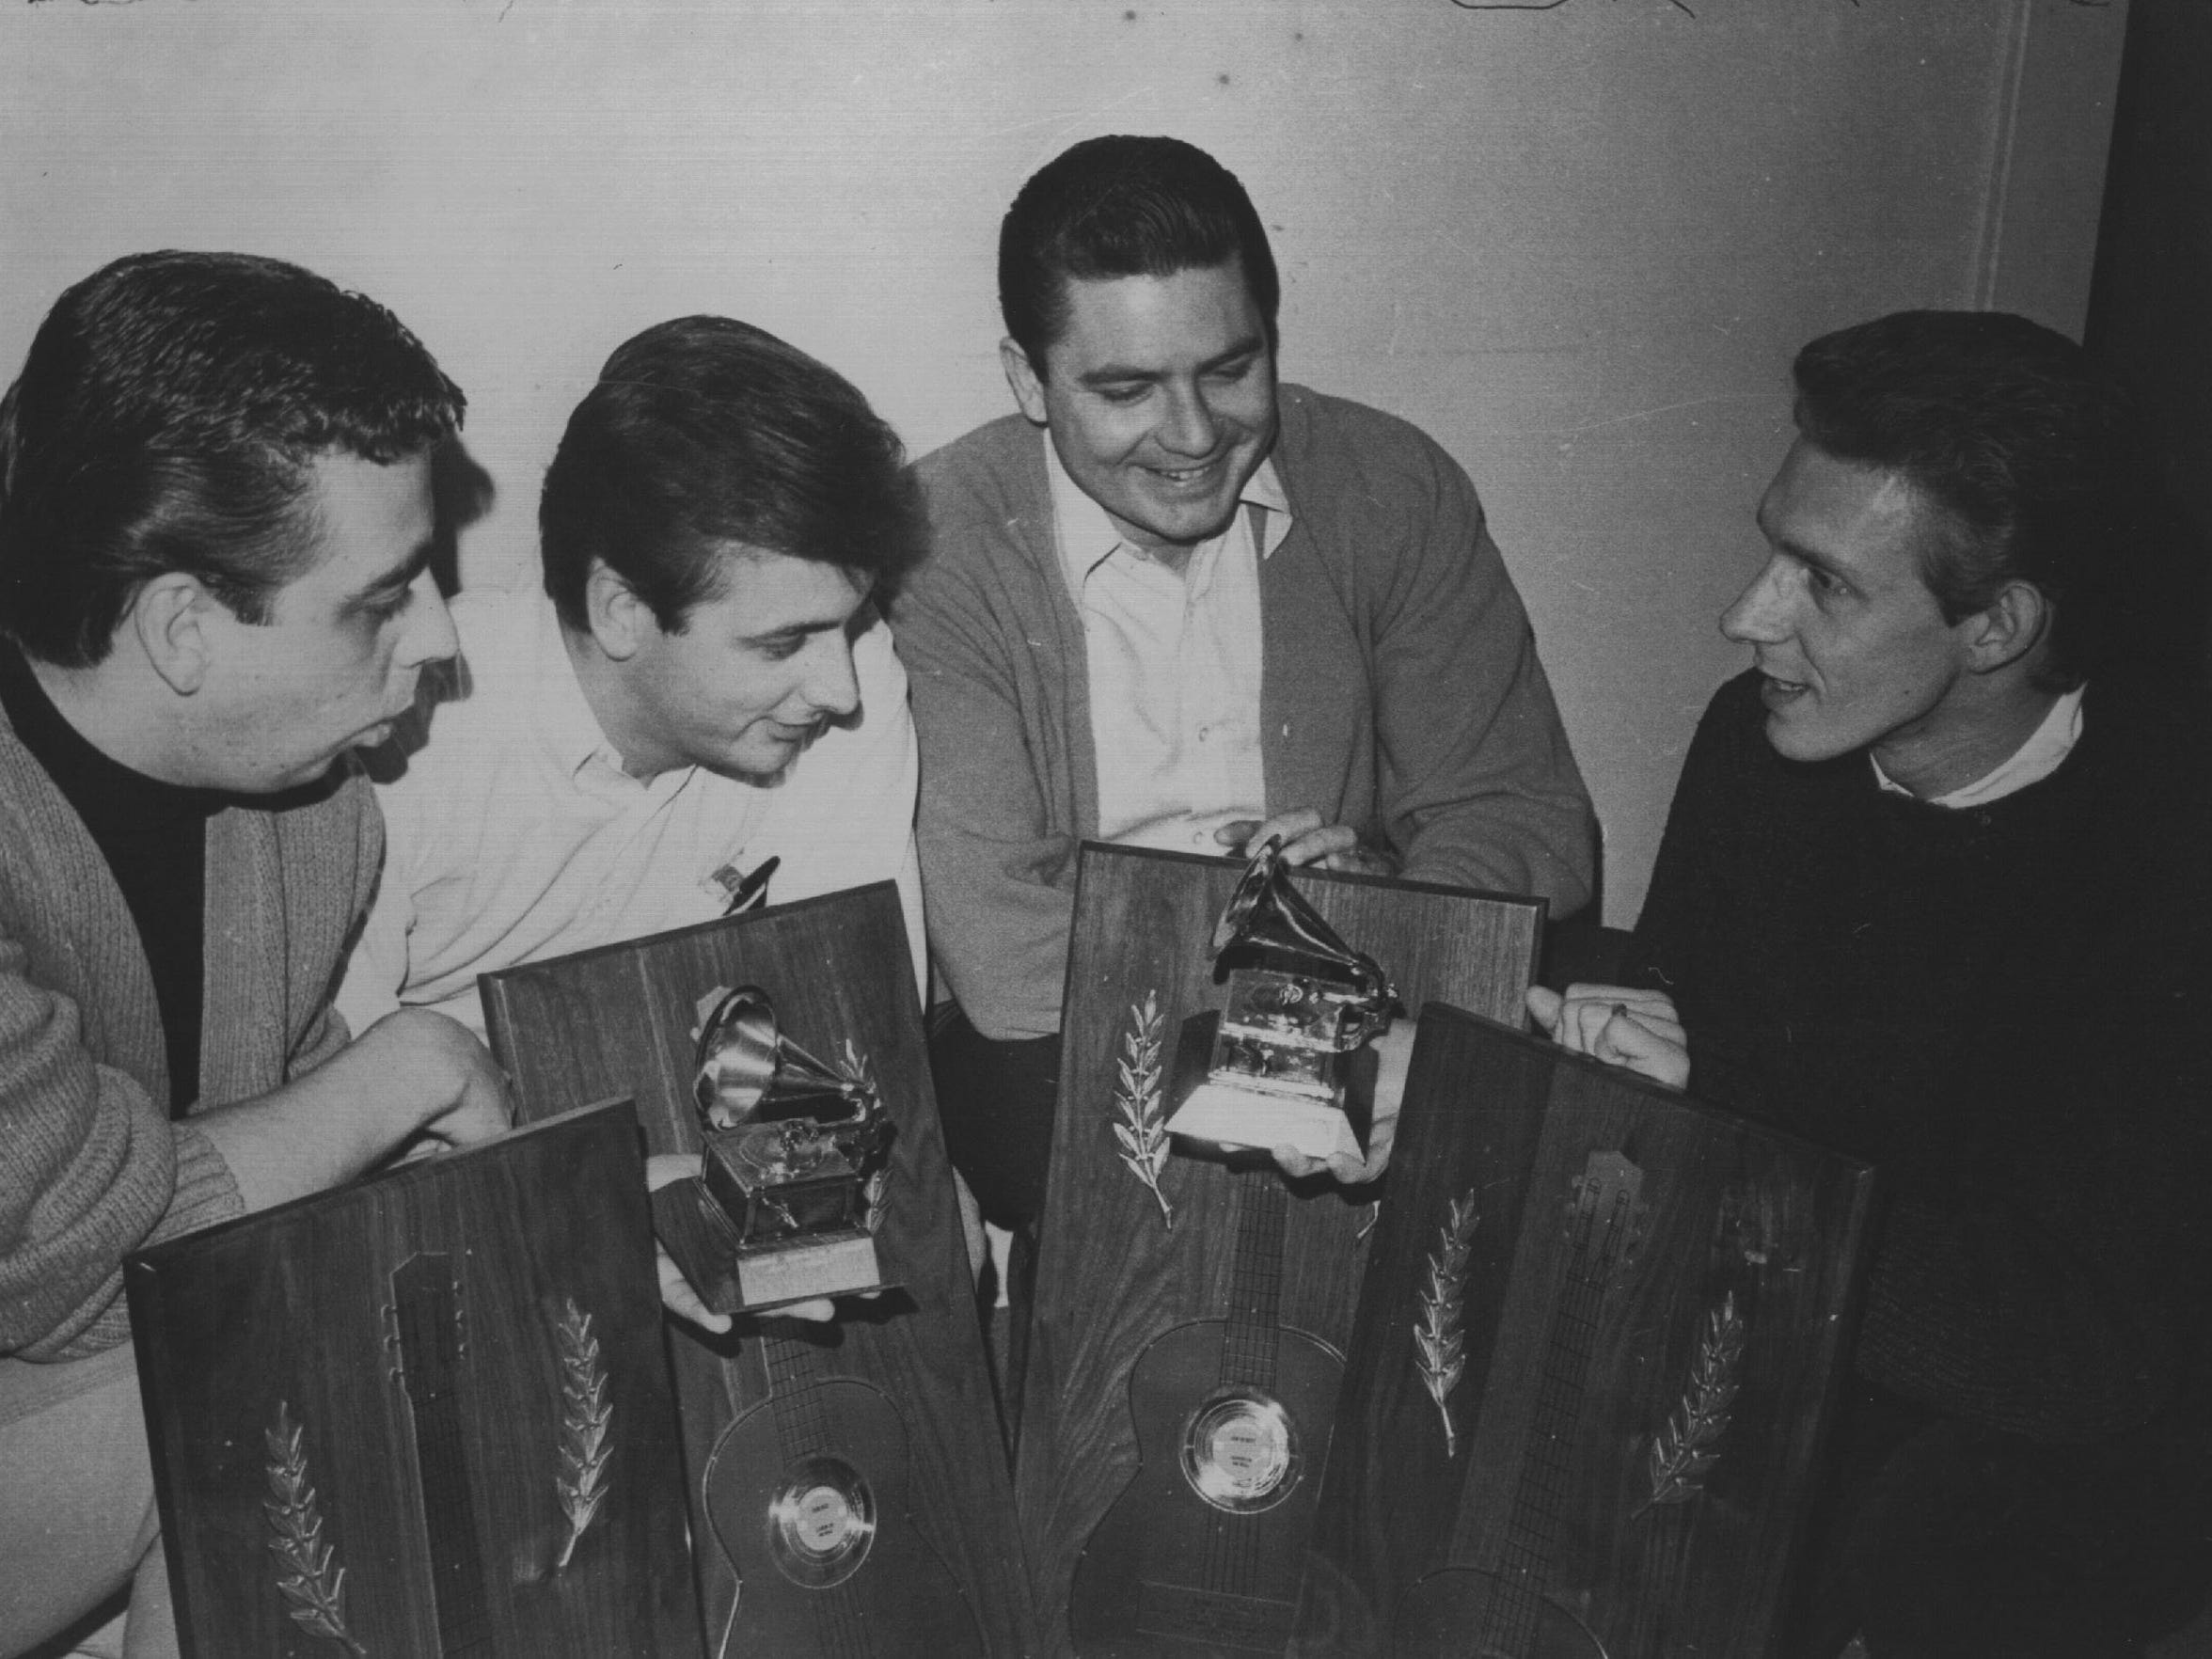 The Statler Brothers admire their 1966 Grammy award